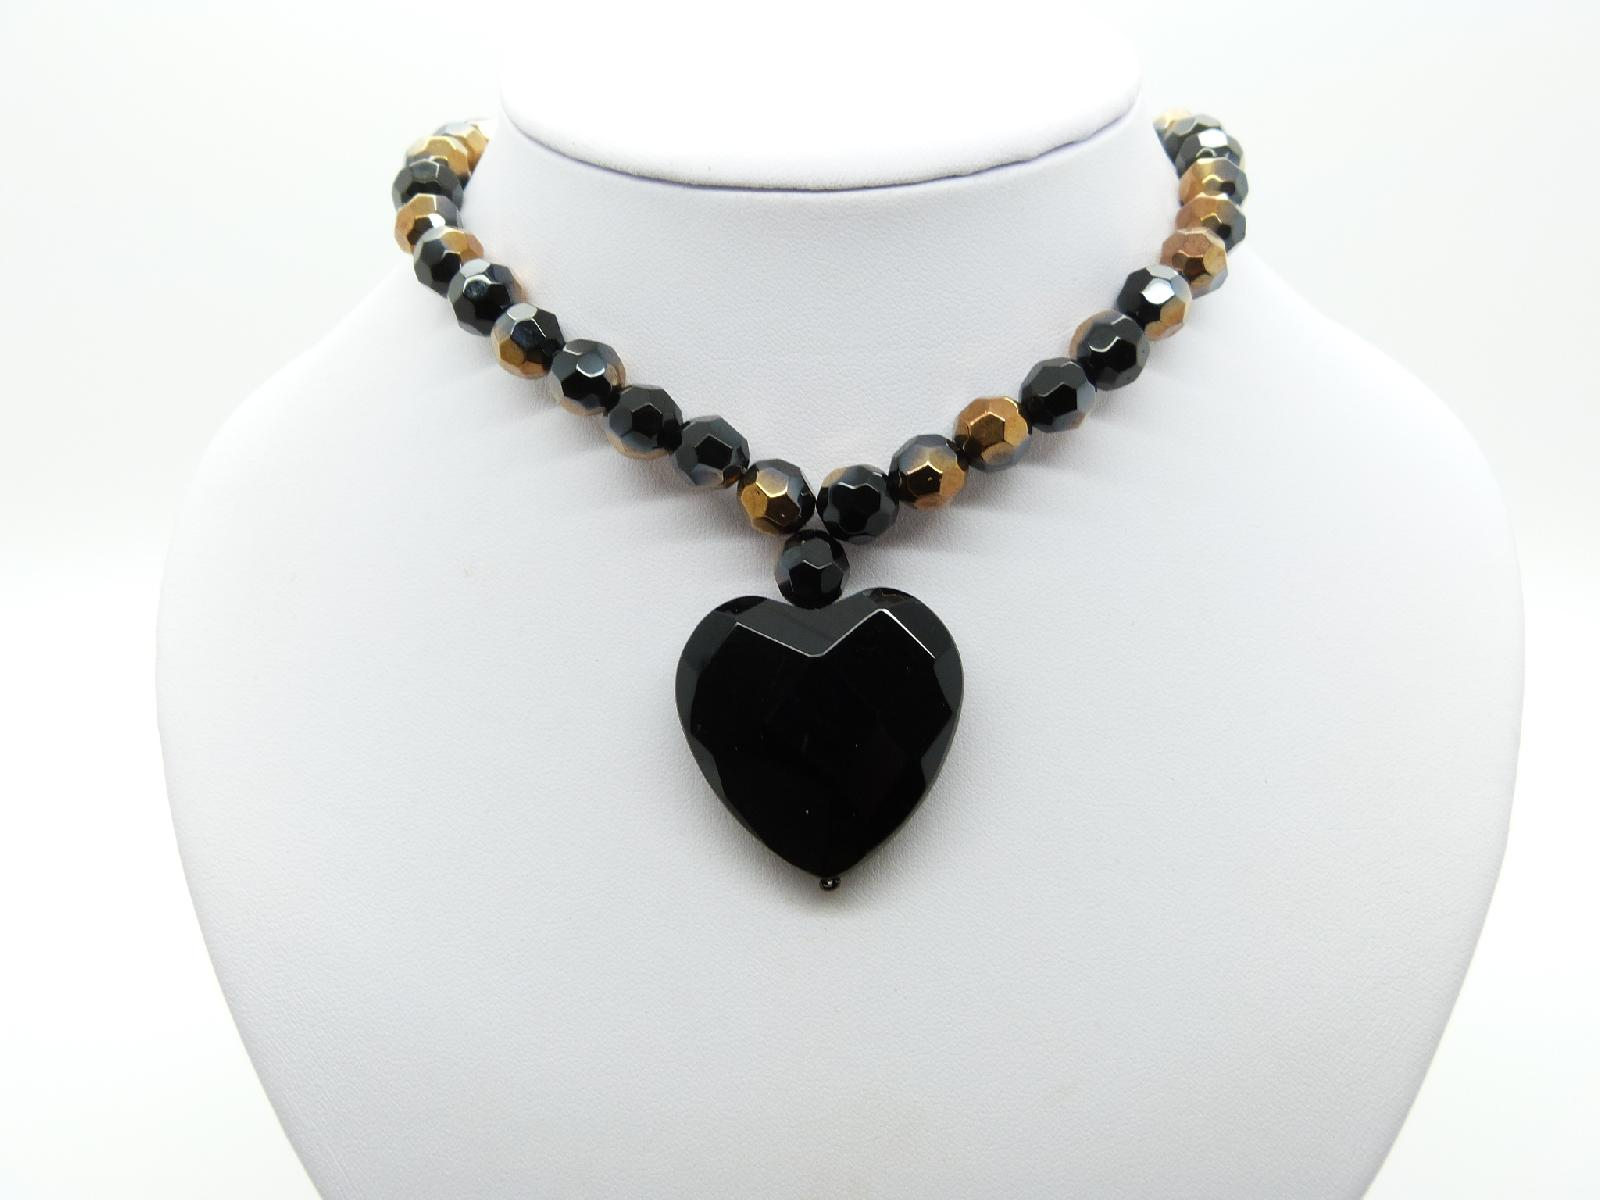 Fab Black and Bronze Hombre Glass Bead Necklace with Large Heart Pendant